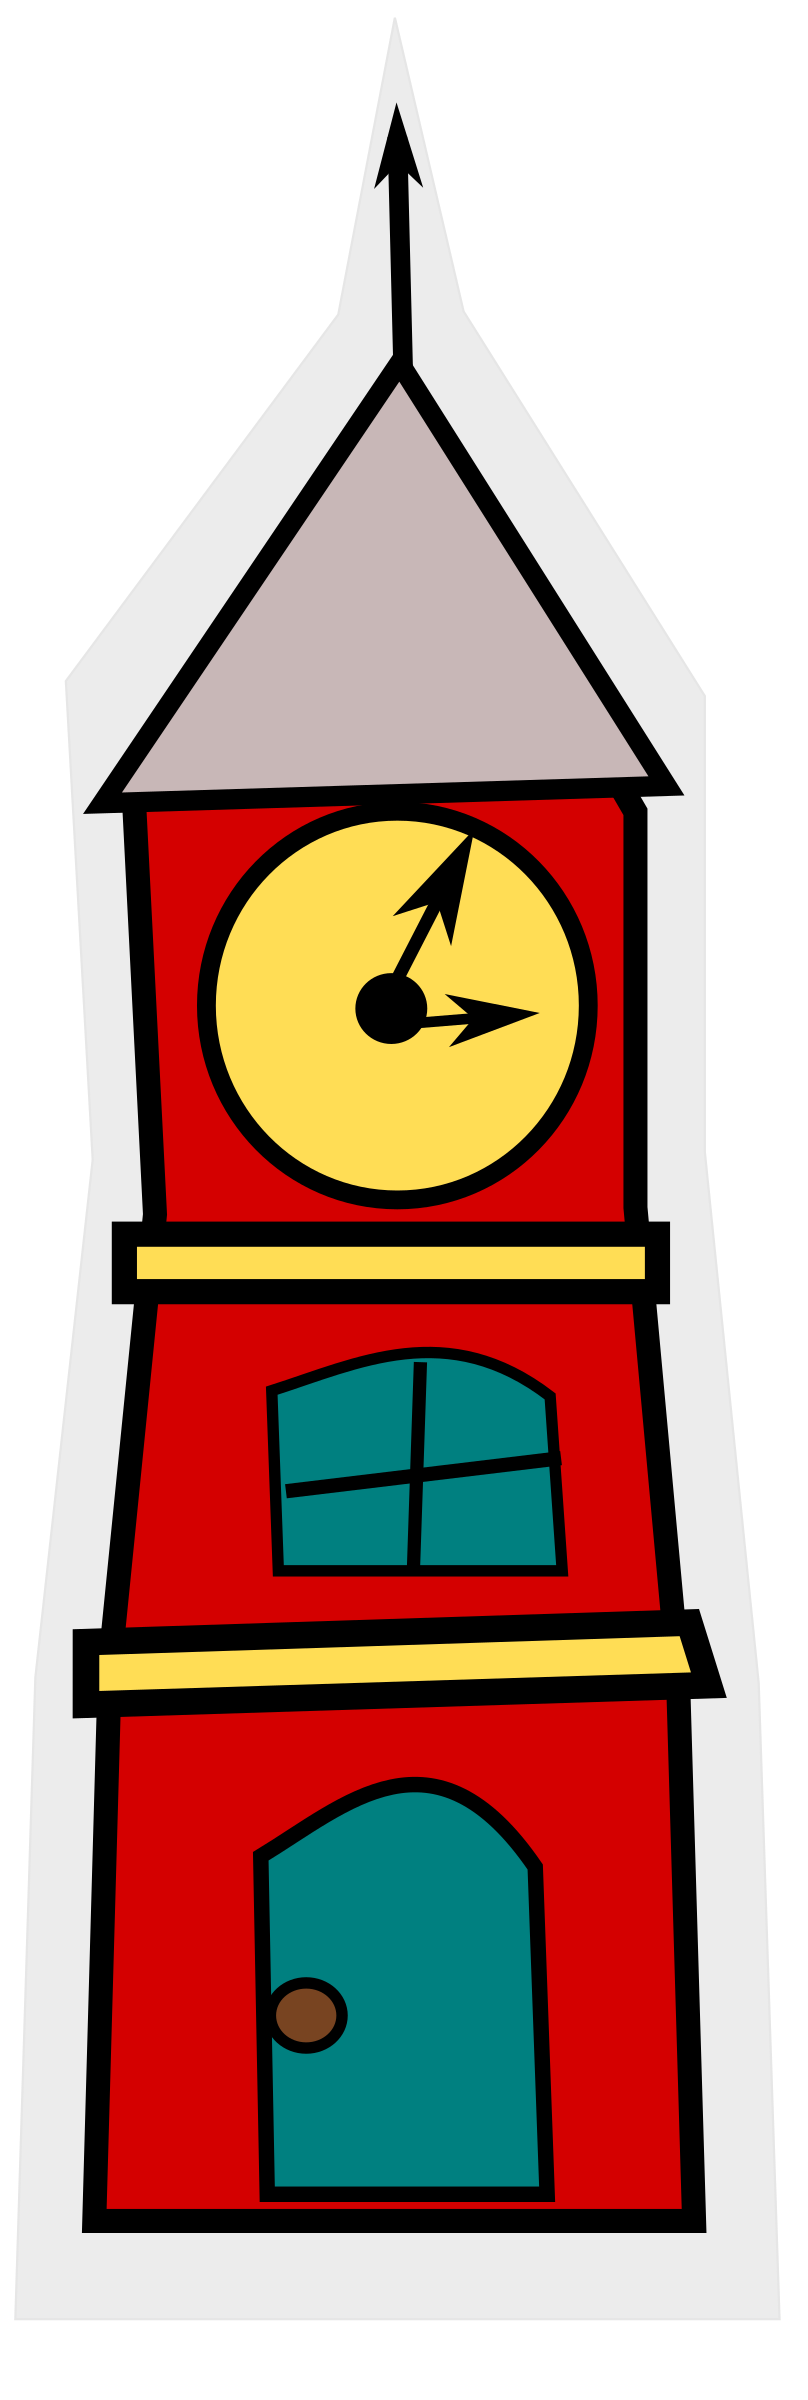 cartoon_tower with a clock by loveandread